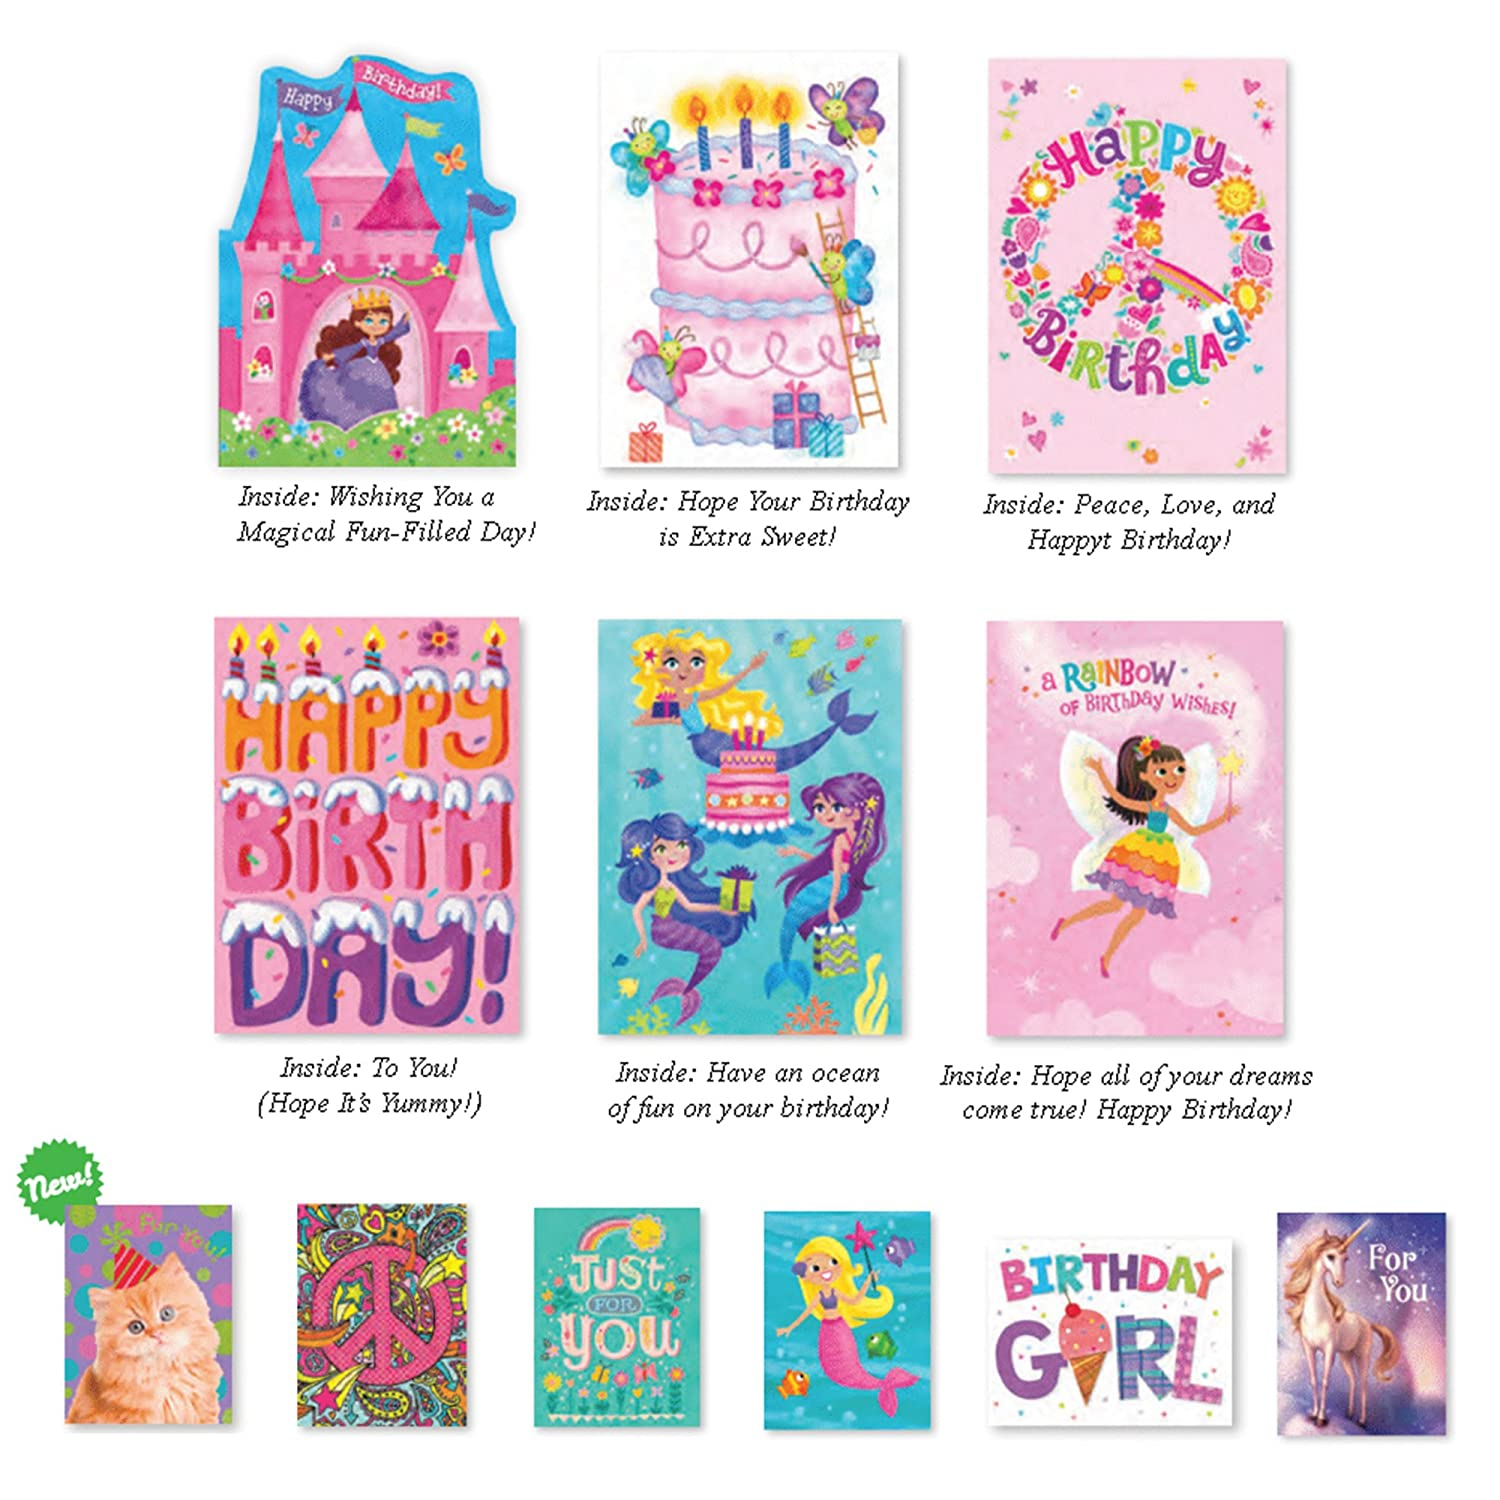 Peaceable Kingdom / Birthday Card Set for Girls - Box of 12 cards and envelopes AX-AY-ABHI-25021